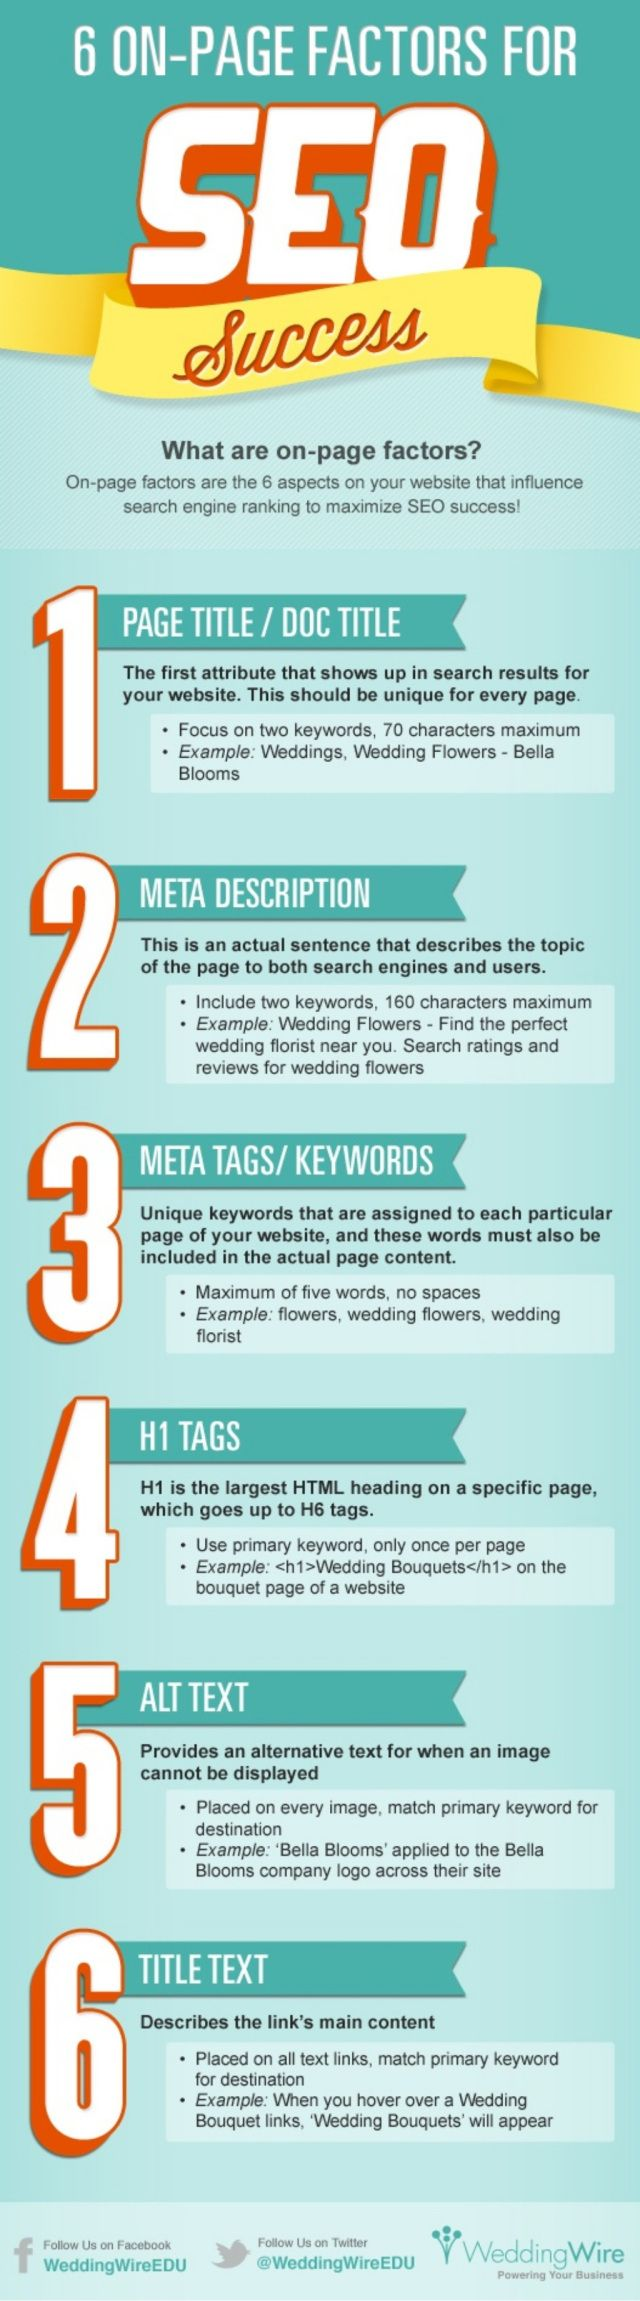 6 On Page Factors for SEO Success 09a39709f8b00a5831f088798f008c91